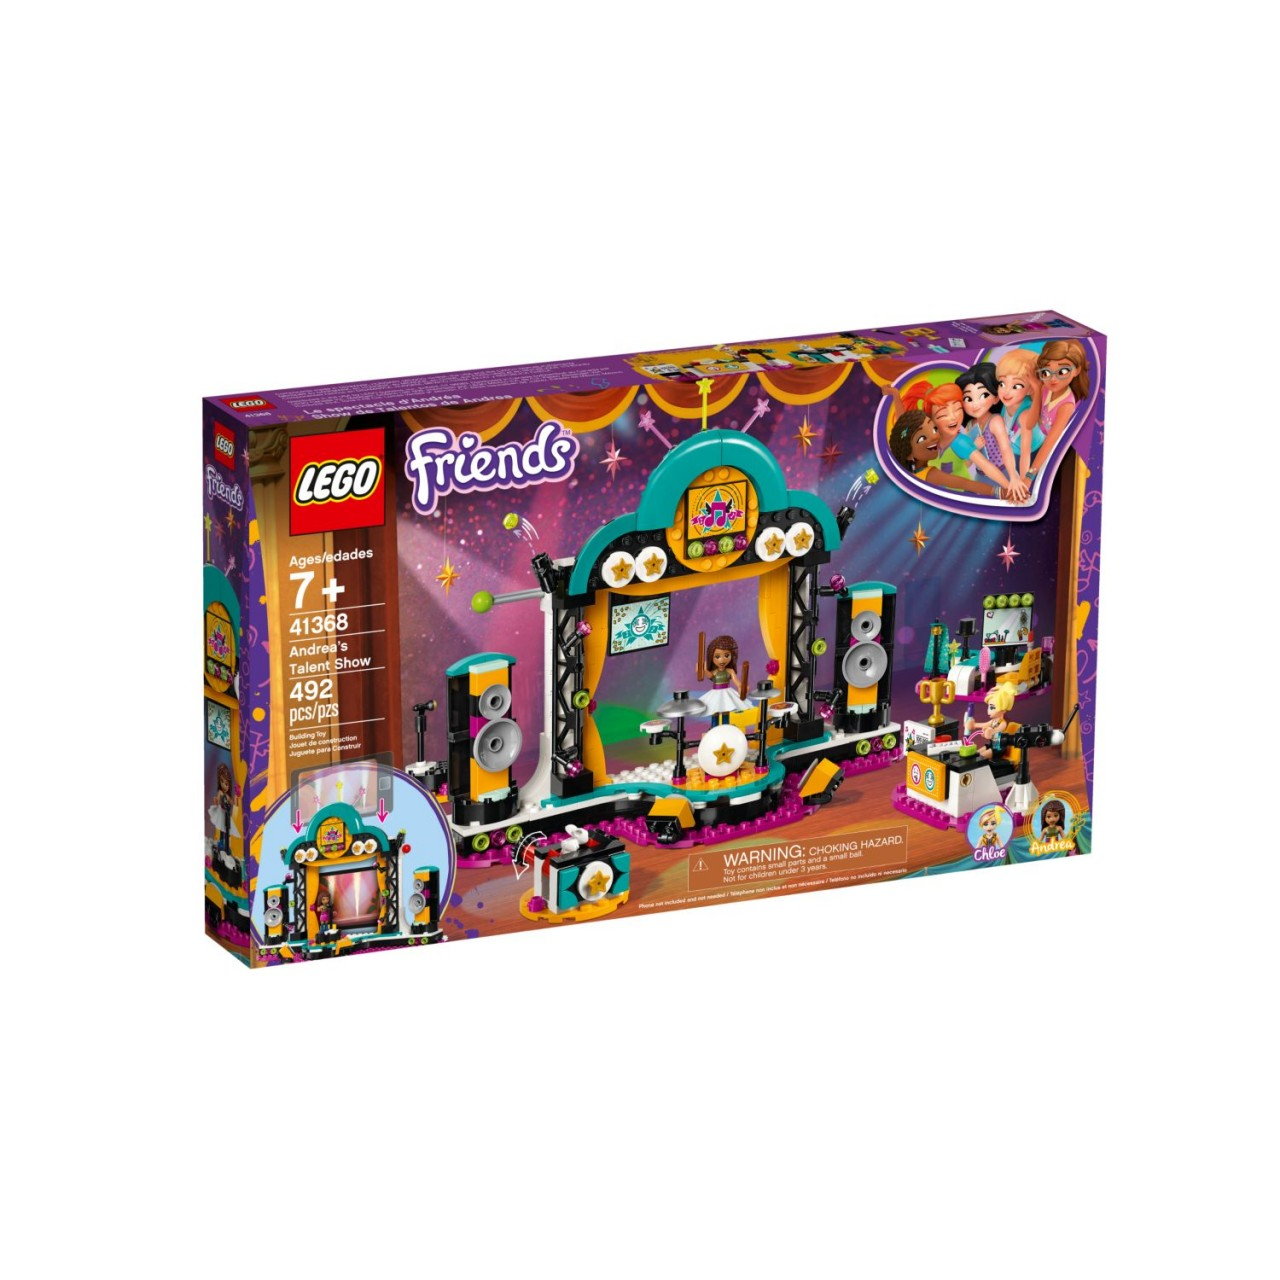 LEGO FRIENDS 41368 Andreas Talentshow